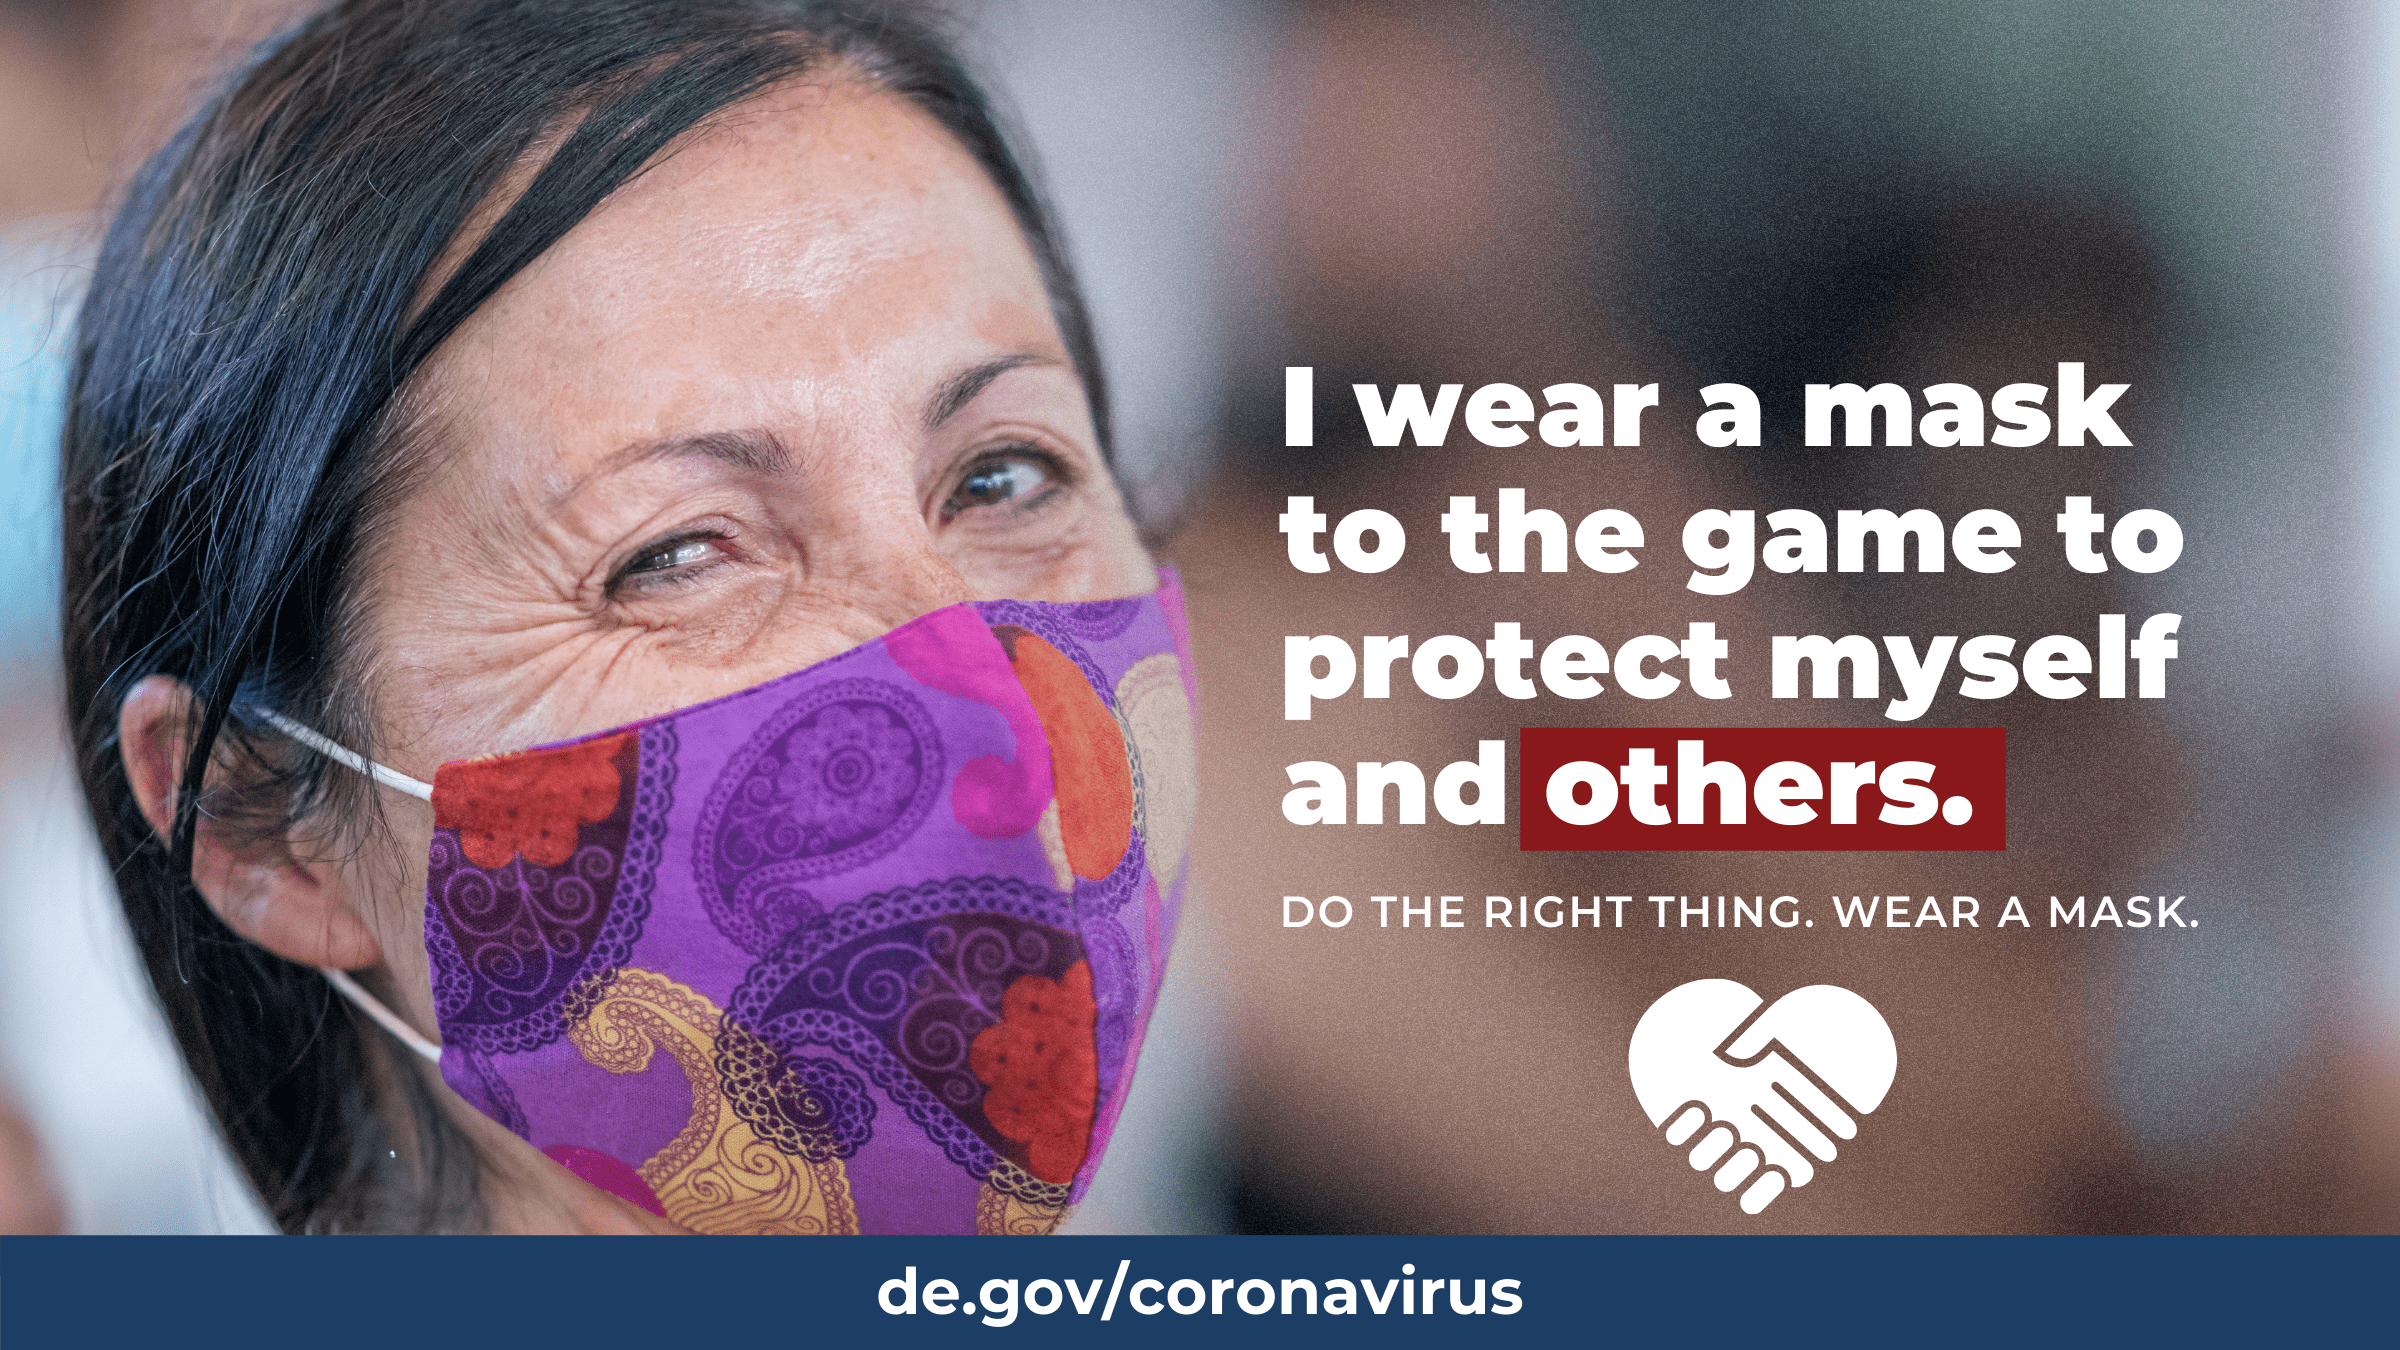 I wear a mask to the game to protect myself and others.